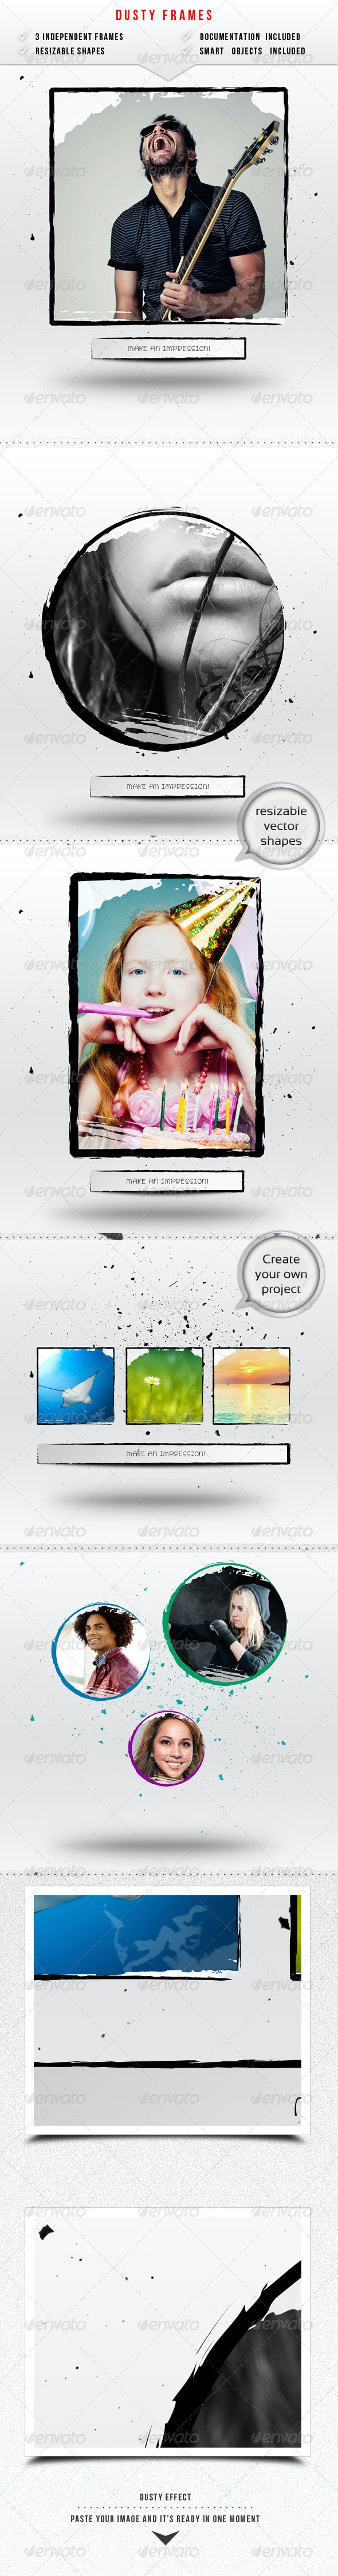 Dusty Image Frames - Artistic Photo Templates